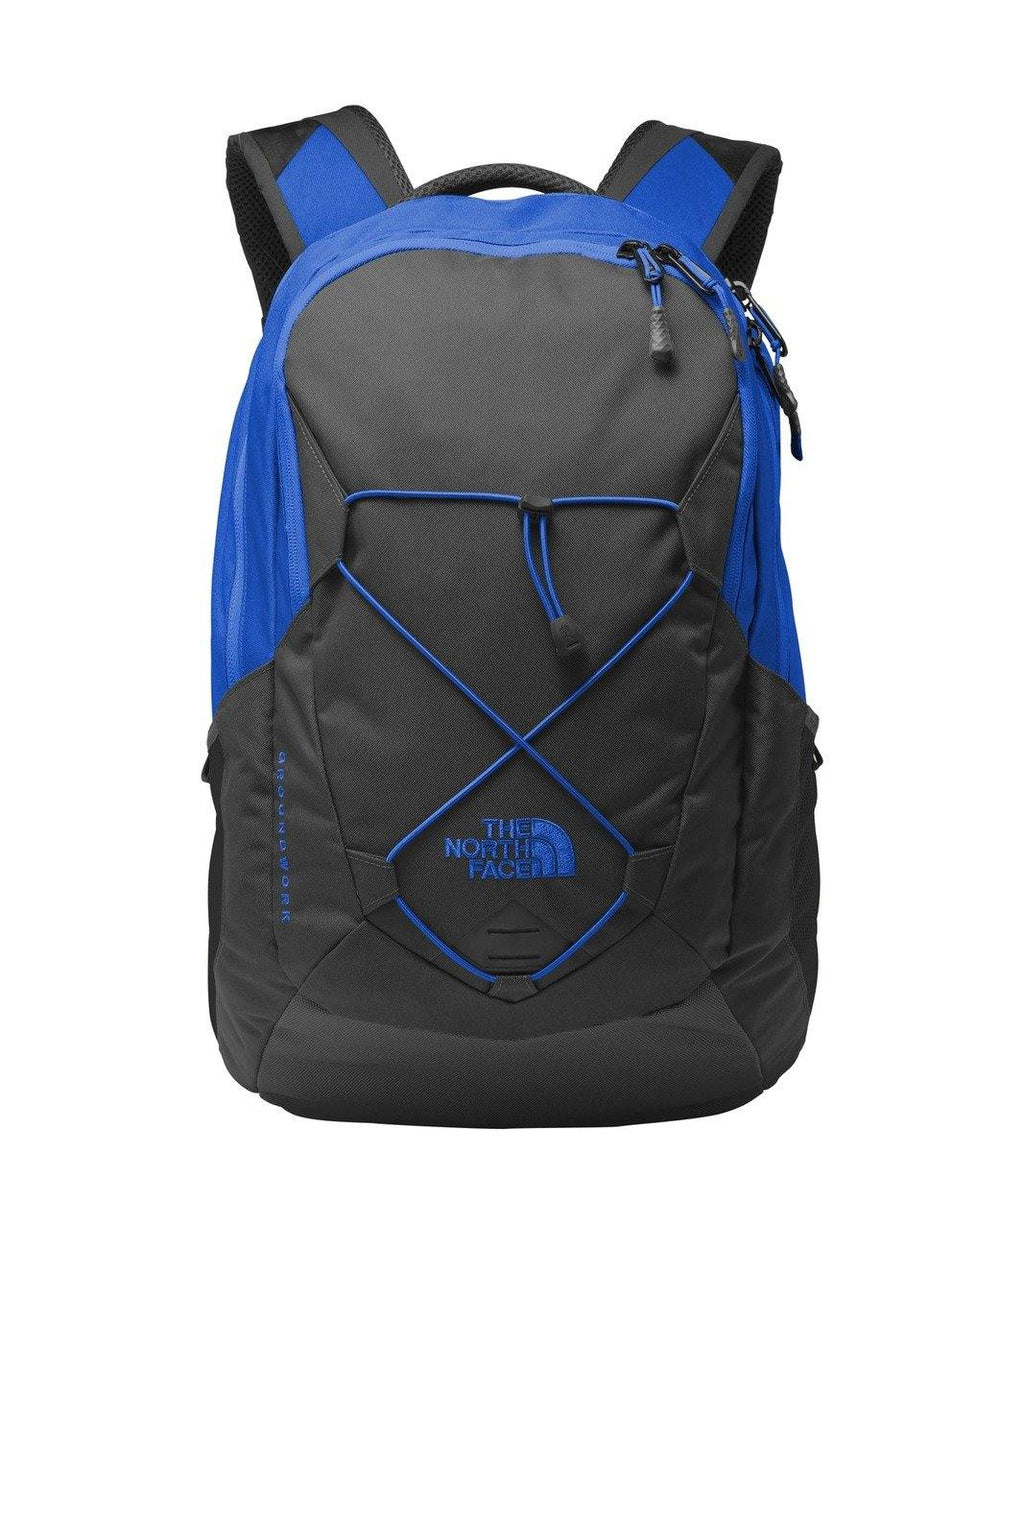 The North Face Groundwork Backpack